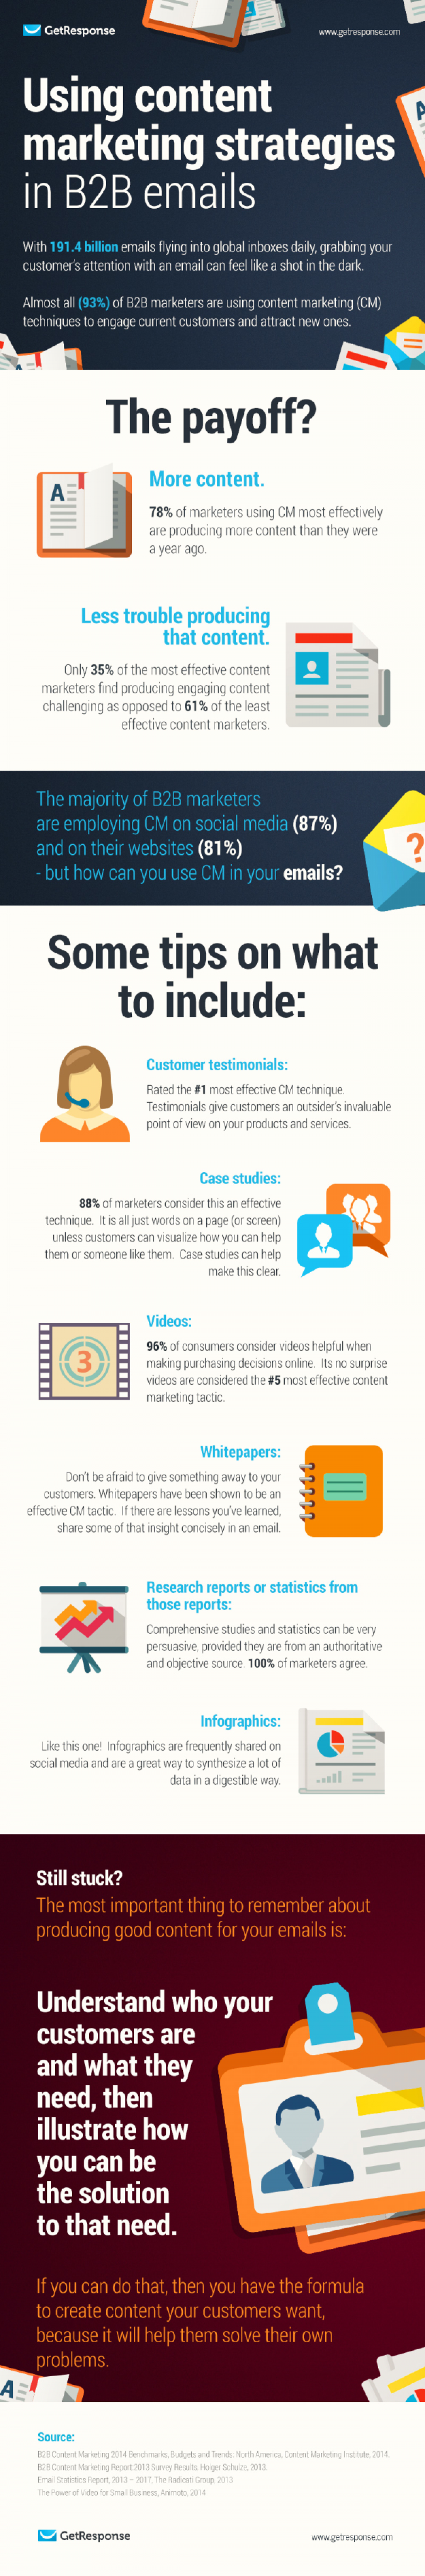 Using Content Marketing Strategies in B2B Emails Infographic